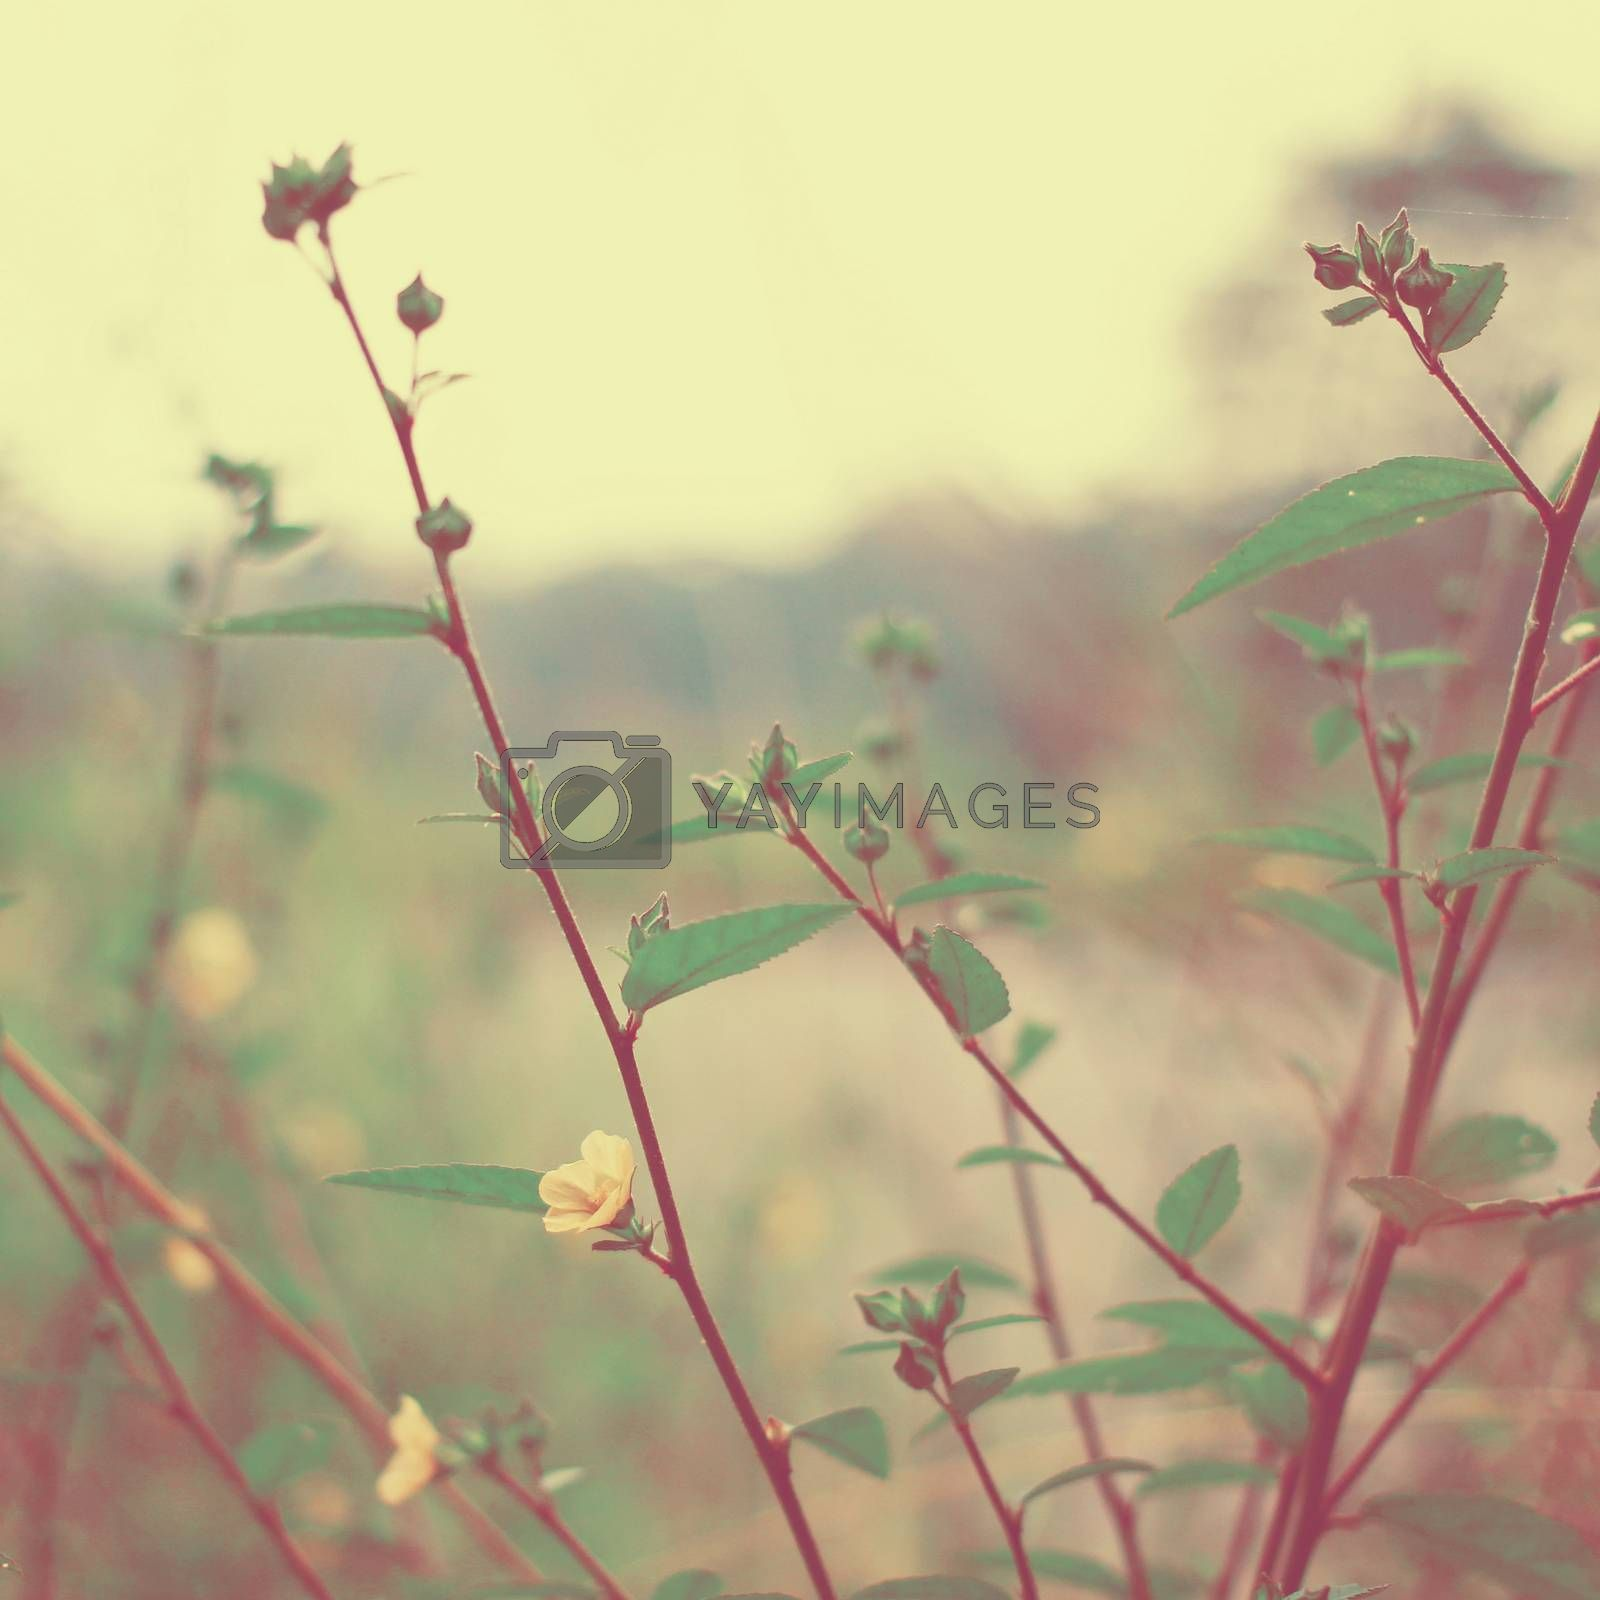 Vintage meadow flowers with retro filter effect